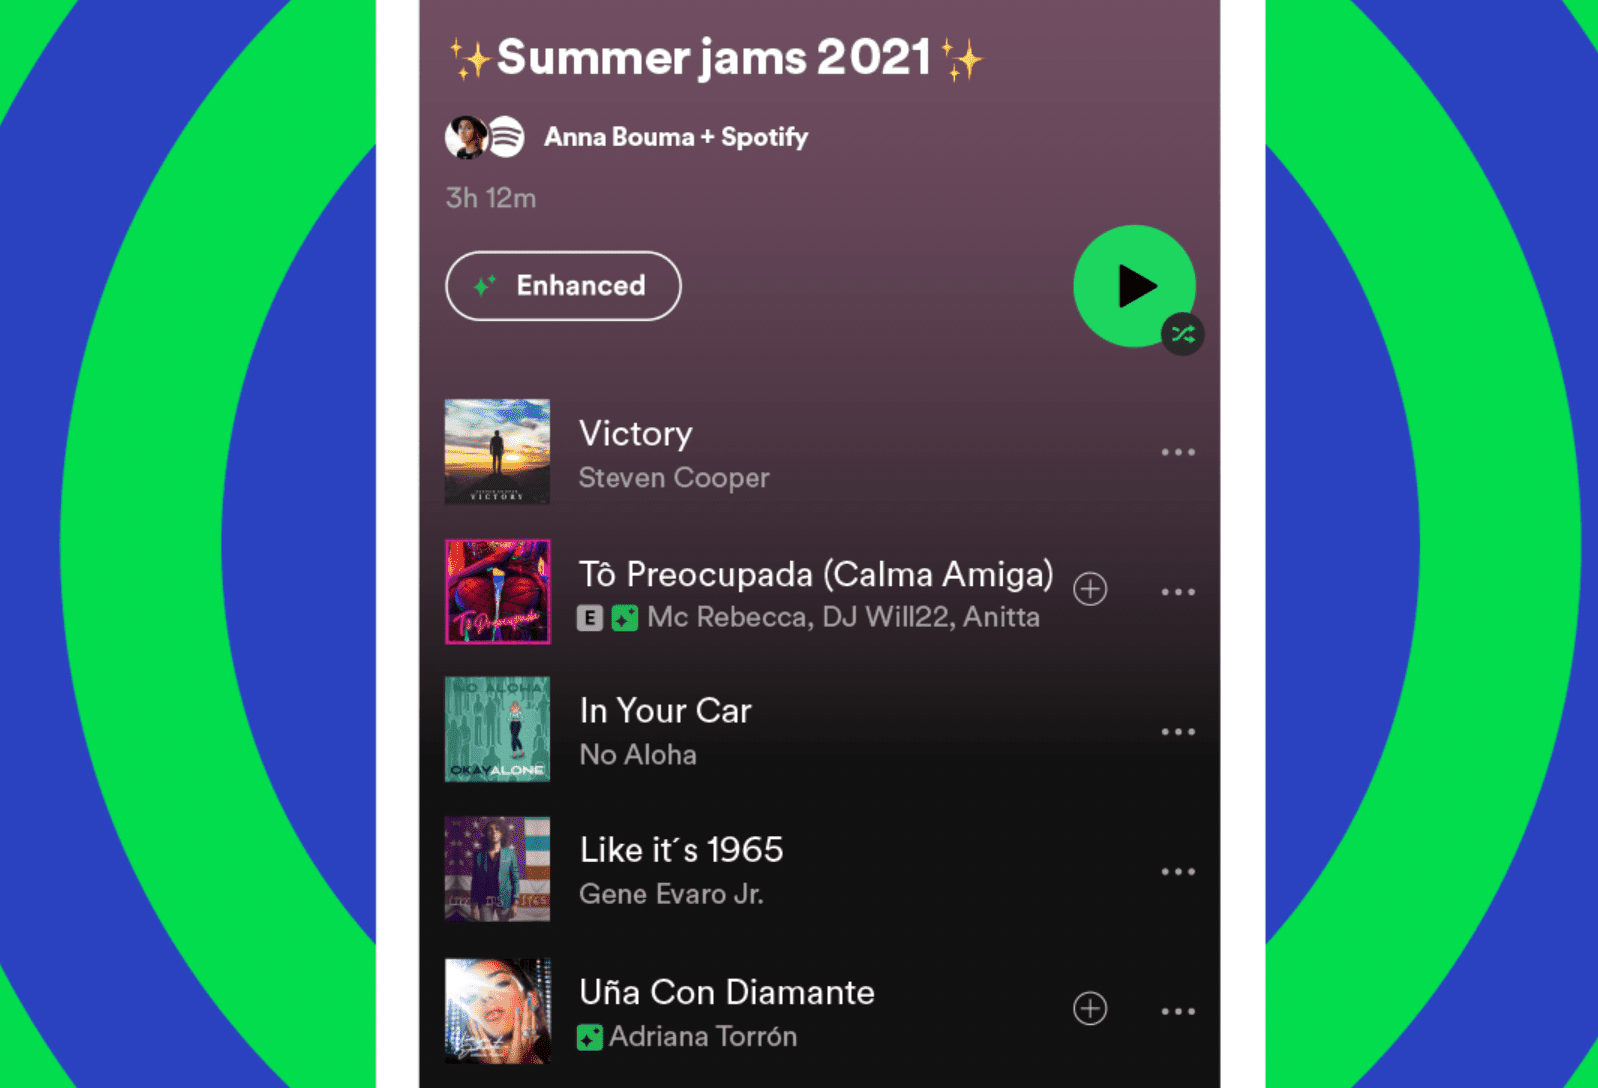 Spotify's new Enhance feature as it appears in the mobile app